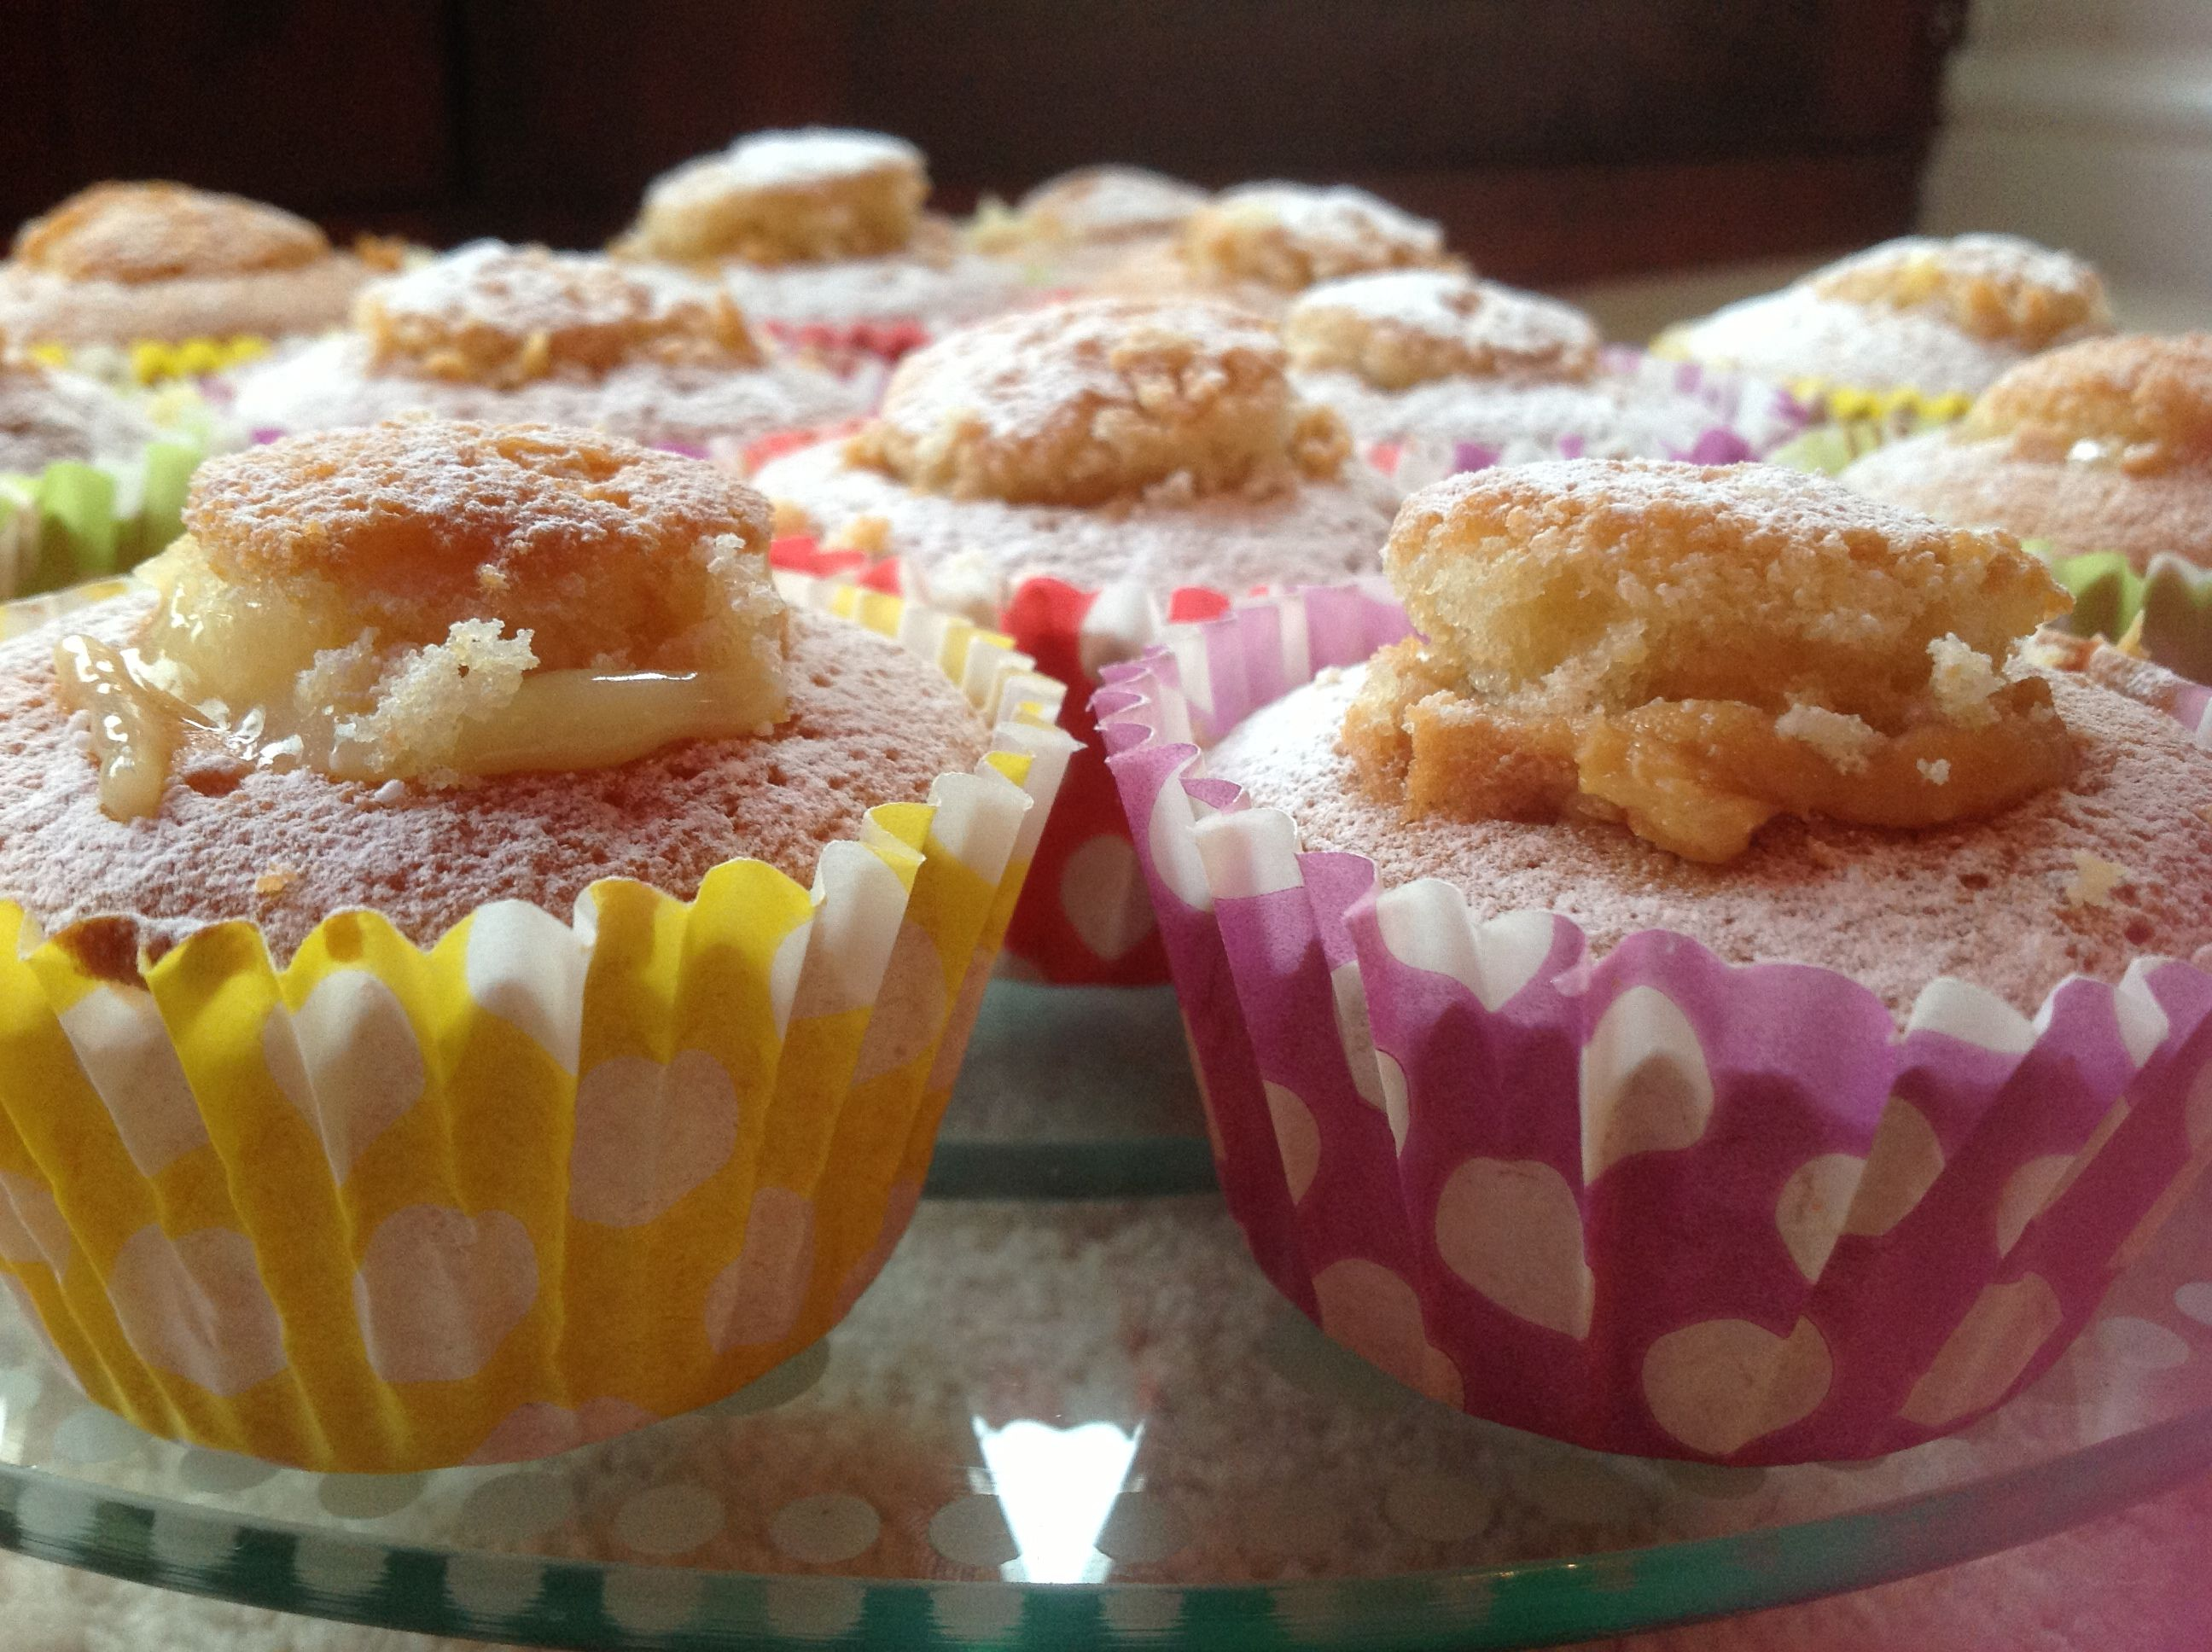 These butterfly cakes filled with Lemon Curd and Peanut butter will brighten any rainy day! Delicious!!!!